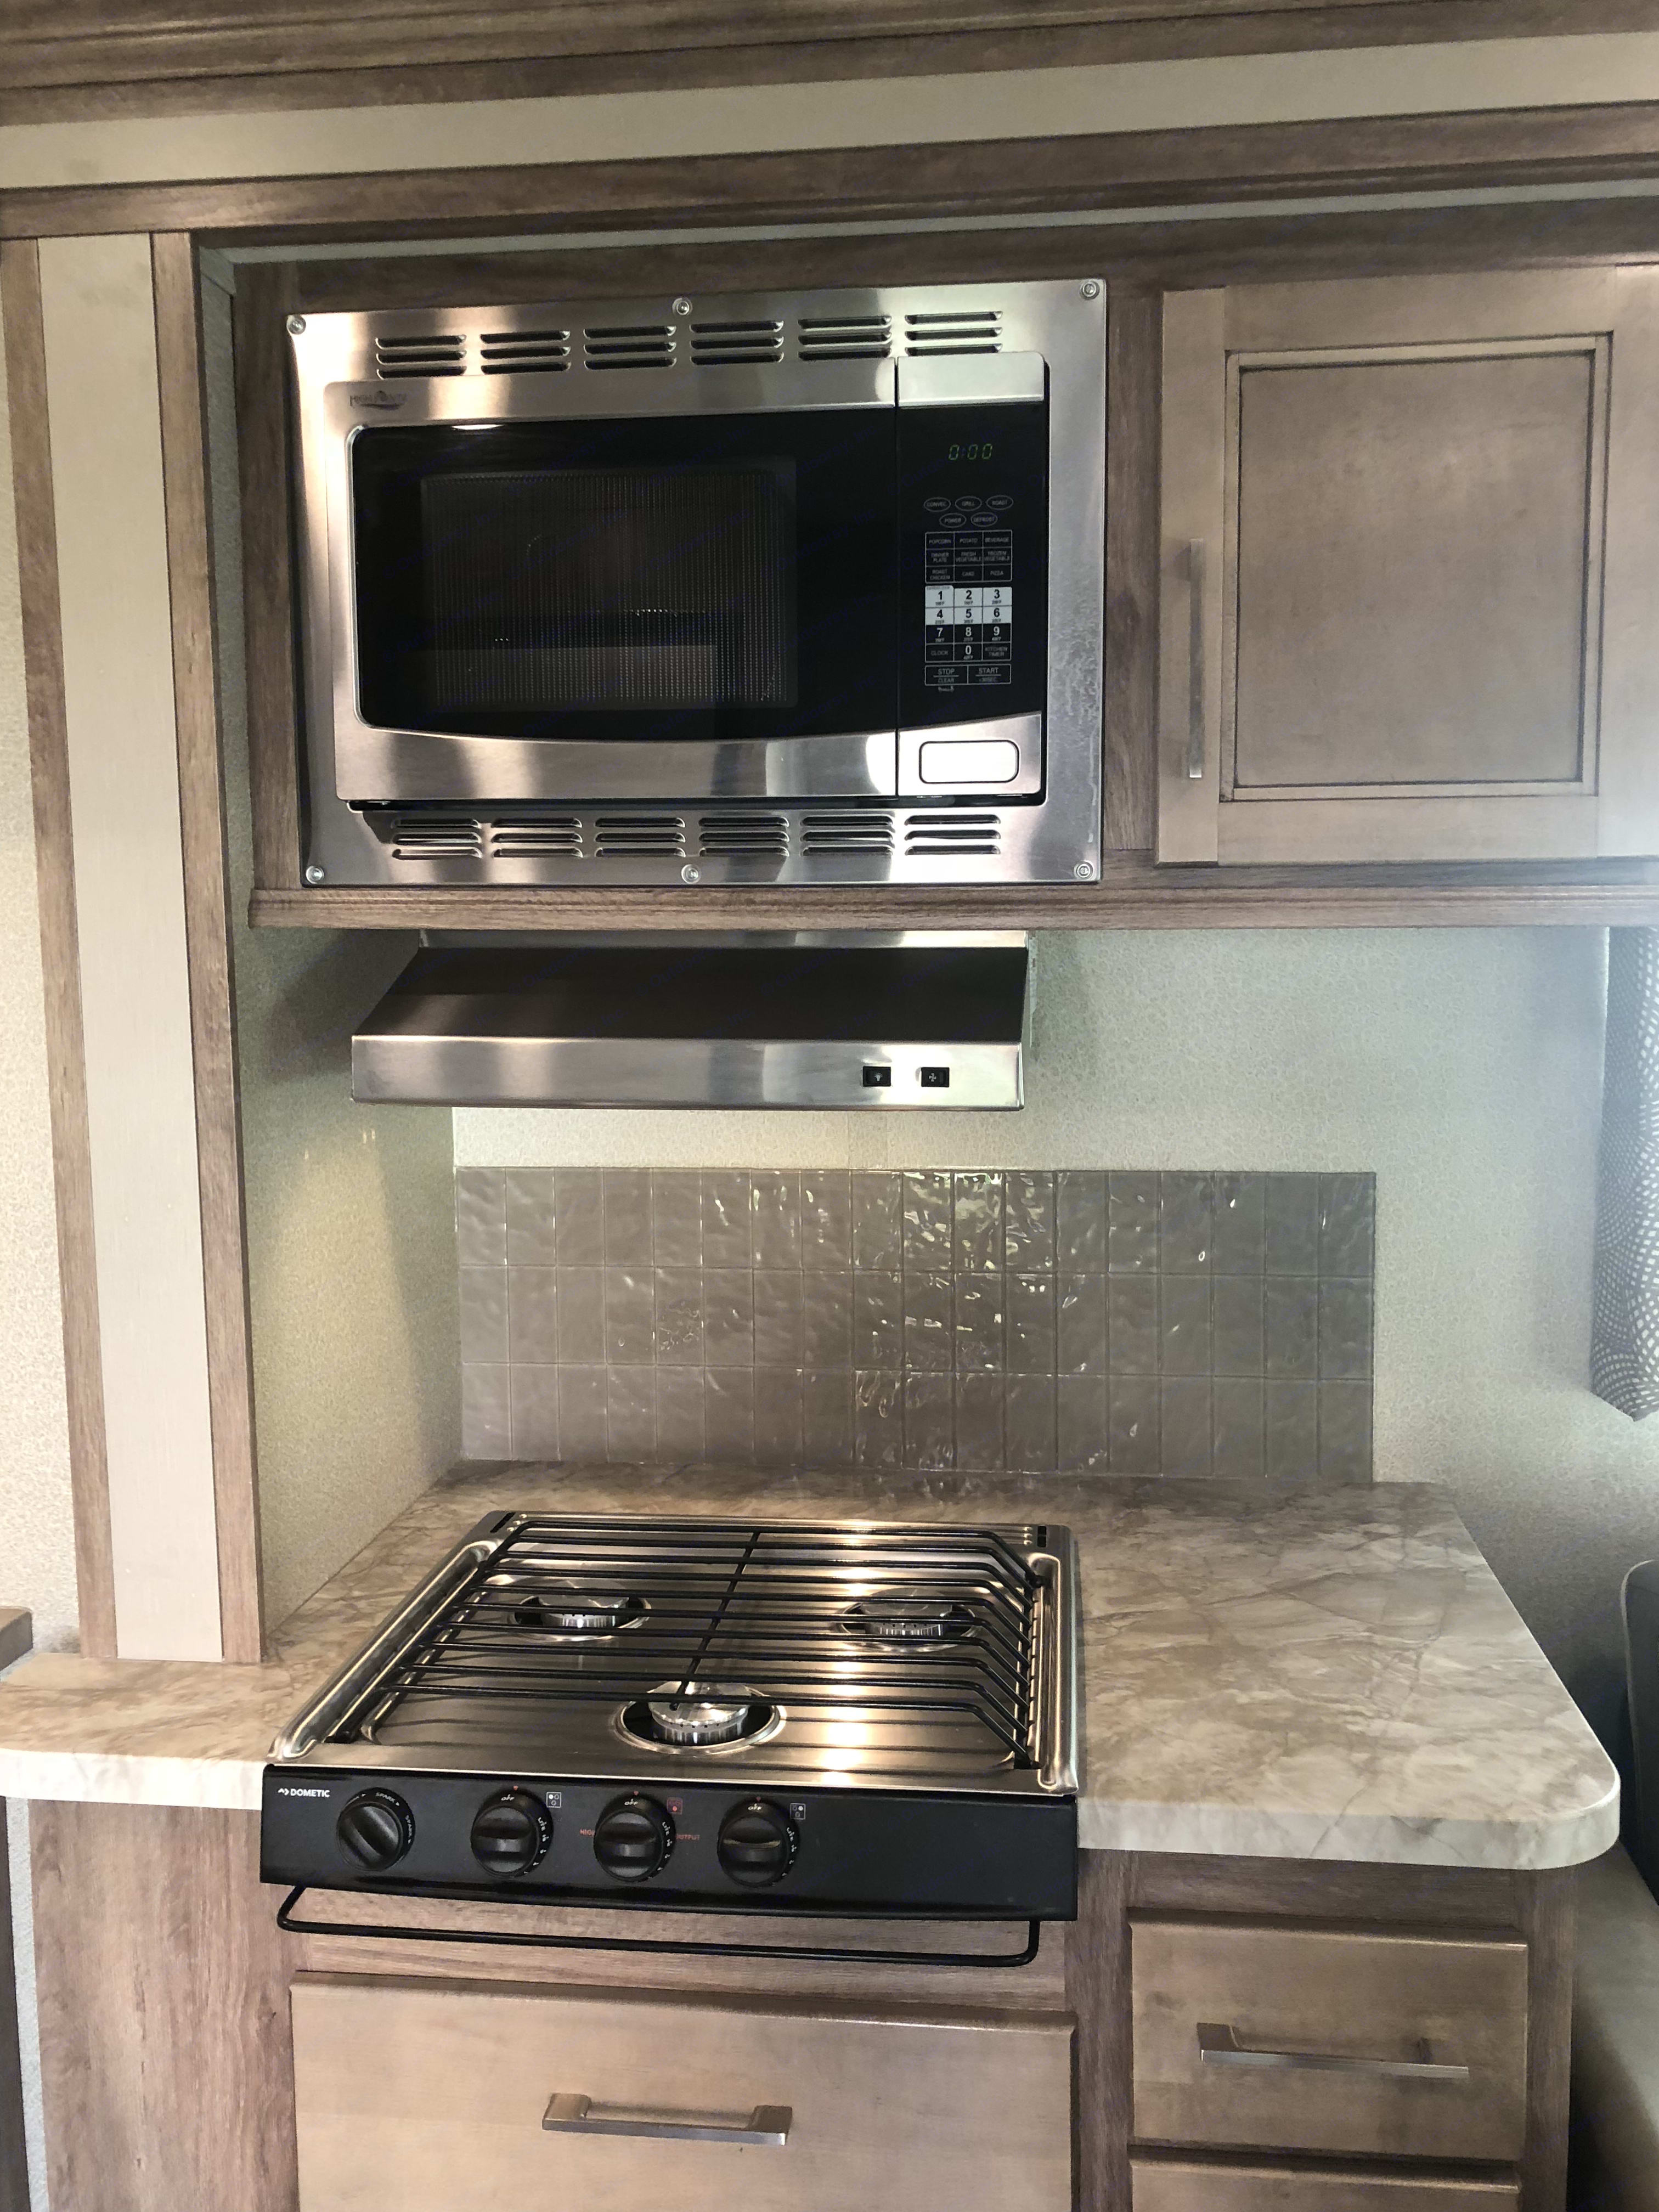 Convection/Microwave Oven and stove. Entegra Odyssey 2019